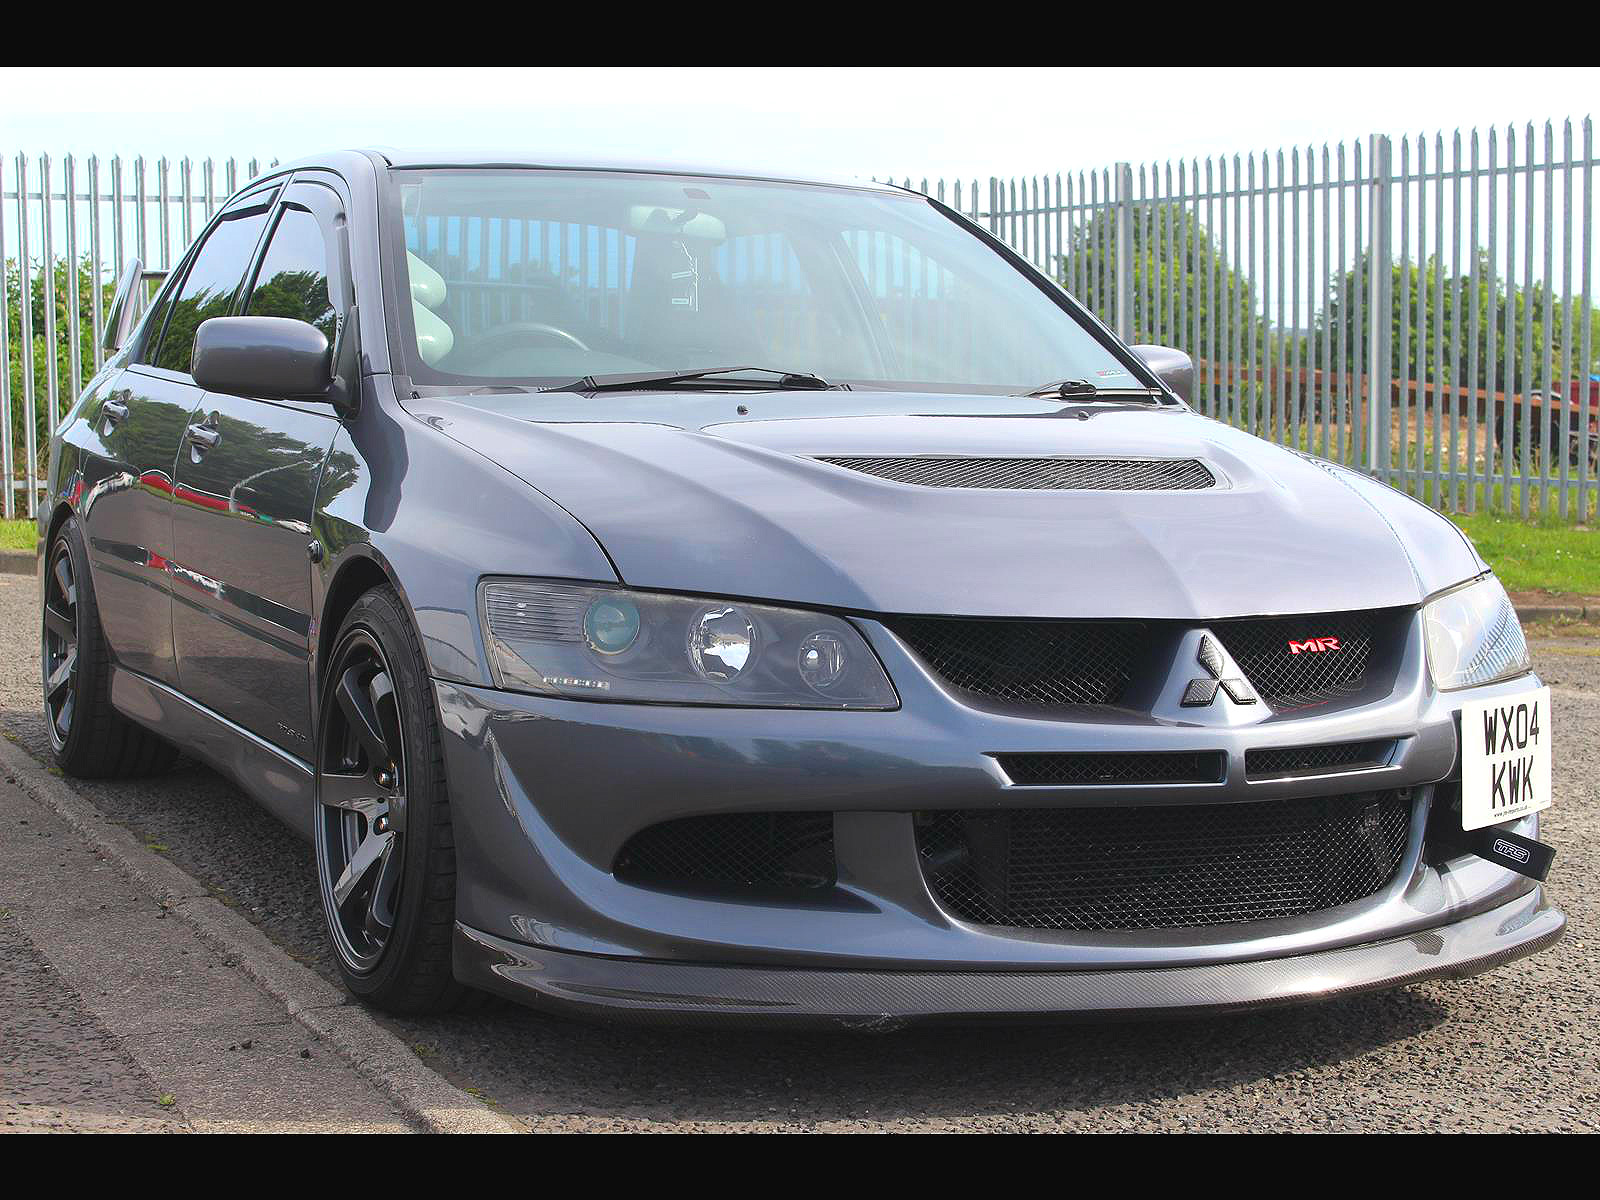 2004 mitsubishi evo 8 mr fq340 400bhp 6 speed manual. Black Bedroom Furniture Sets. Home Design Ideas